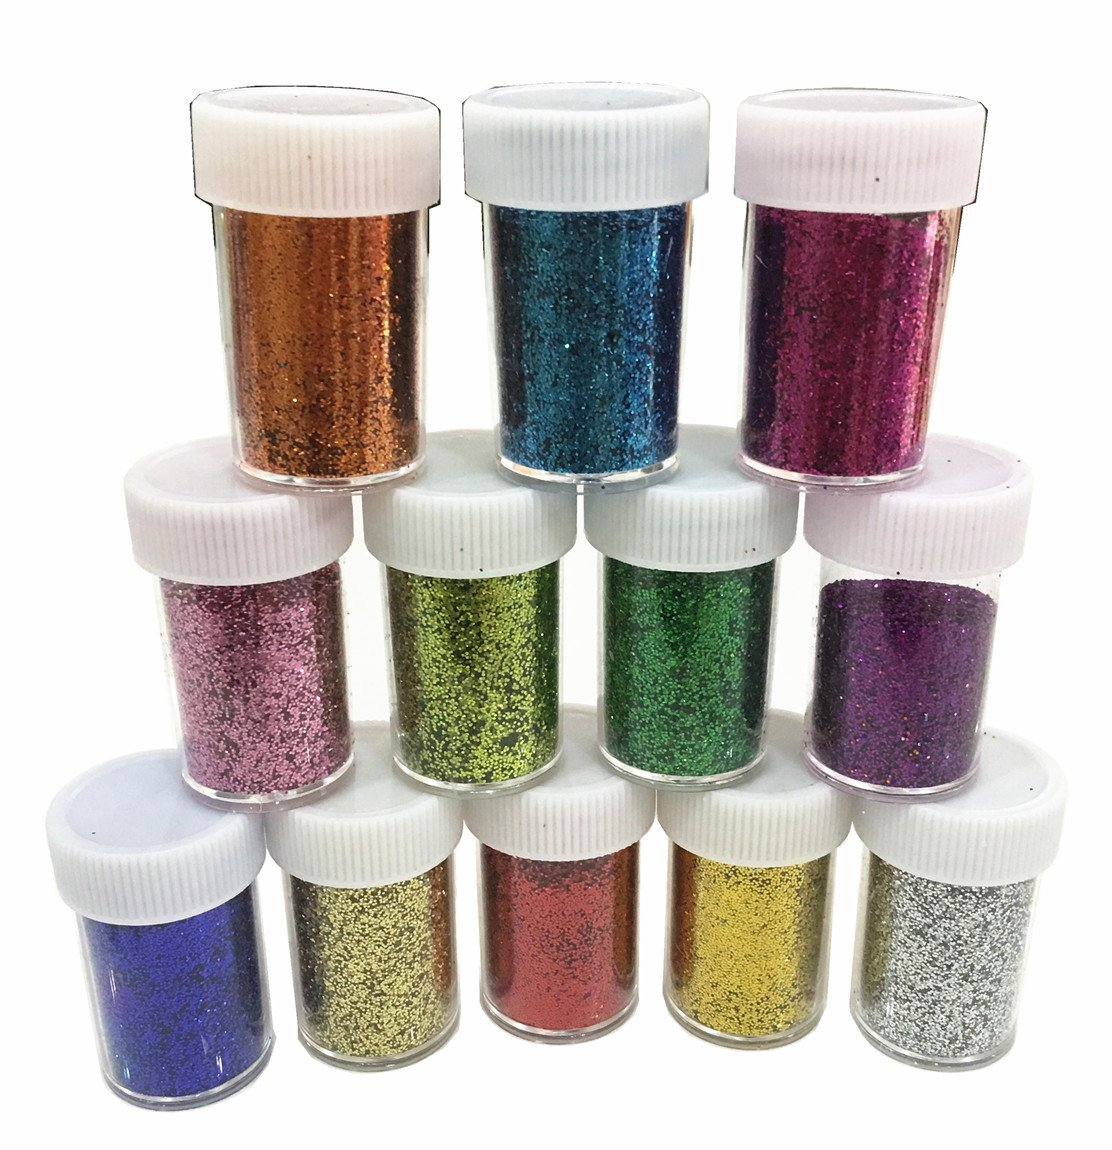 Slime Supplies Glitter Powder Sequins for Slime,Arts Crafts Extra Solvent Resistant Glitter Powder Shakers,Bulk Acrylic Polyester Craft Supplies Glitter Loose Eyeshadow,12 Pack (24 small pack glitter) Kiikool 4336855309